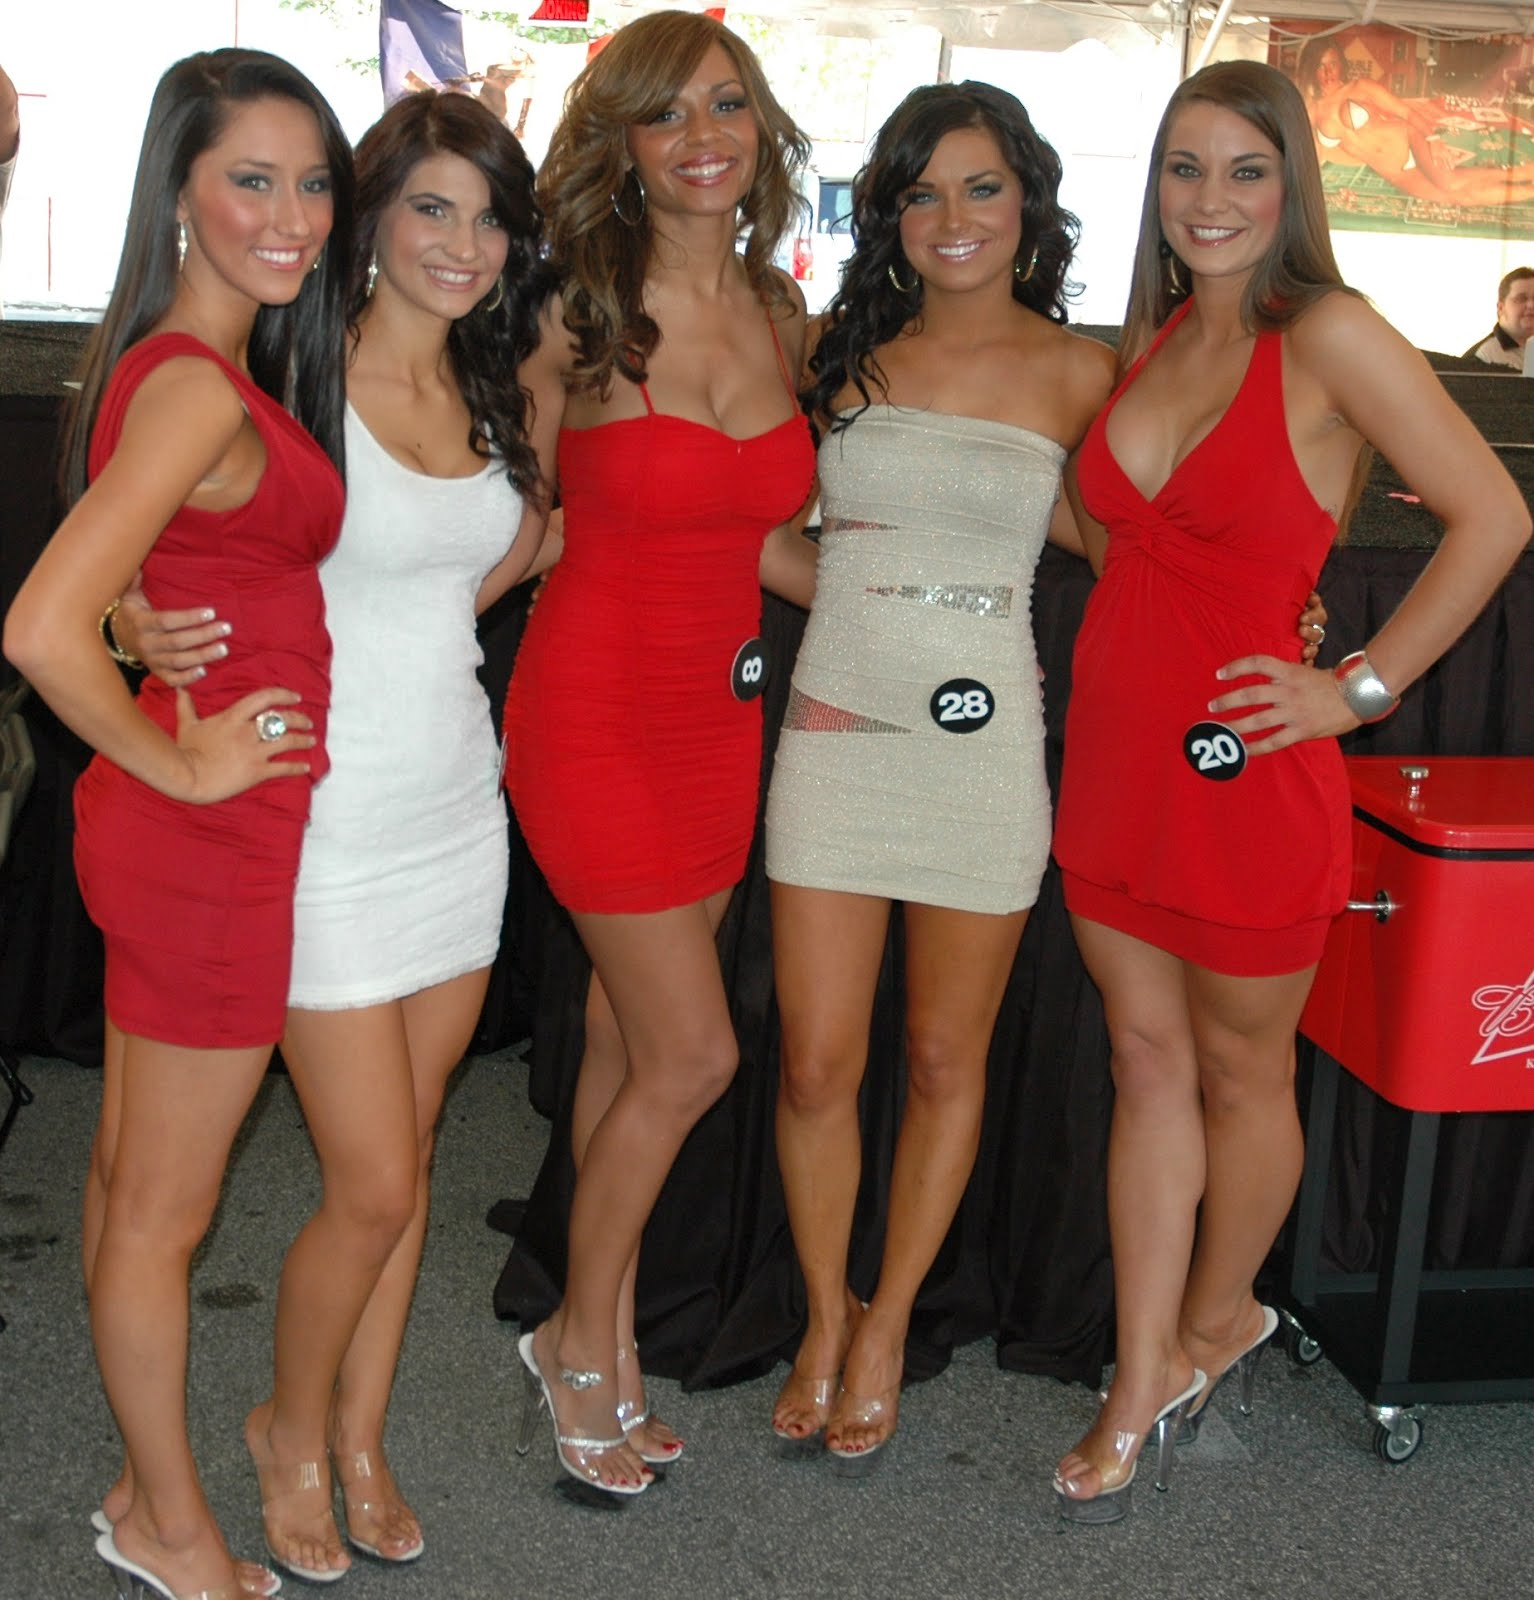 Hooters+Swimsuits+Contests Fred Hotline: 2012 Hooters Swimsuit Contest